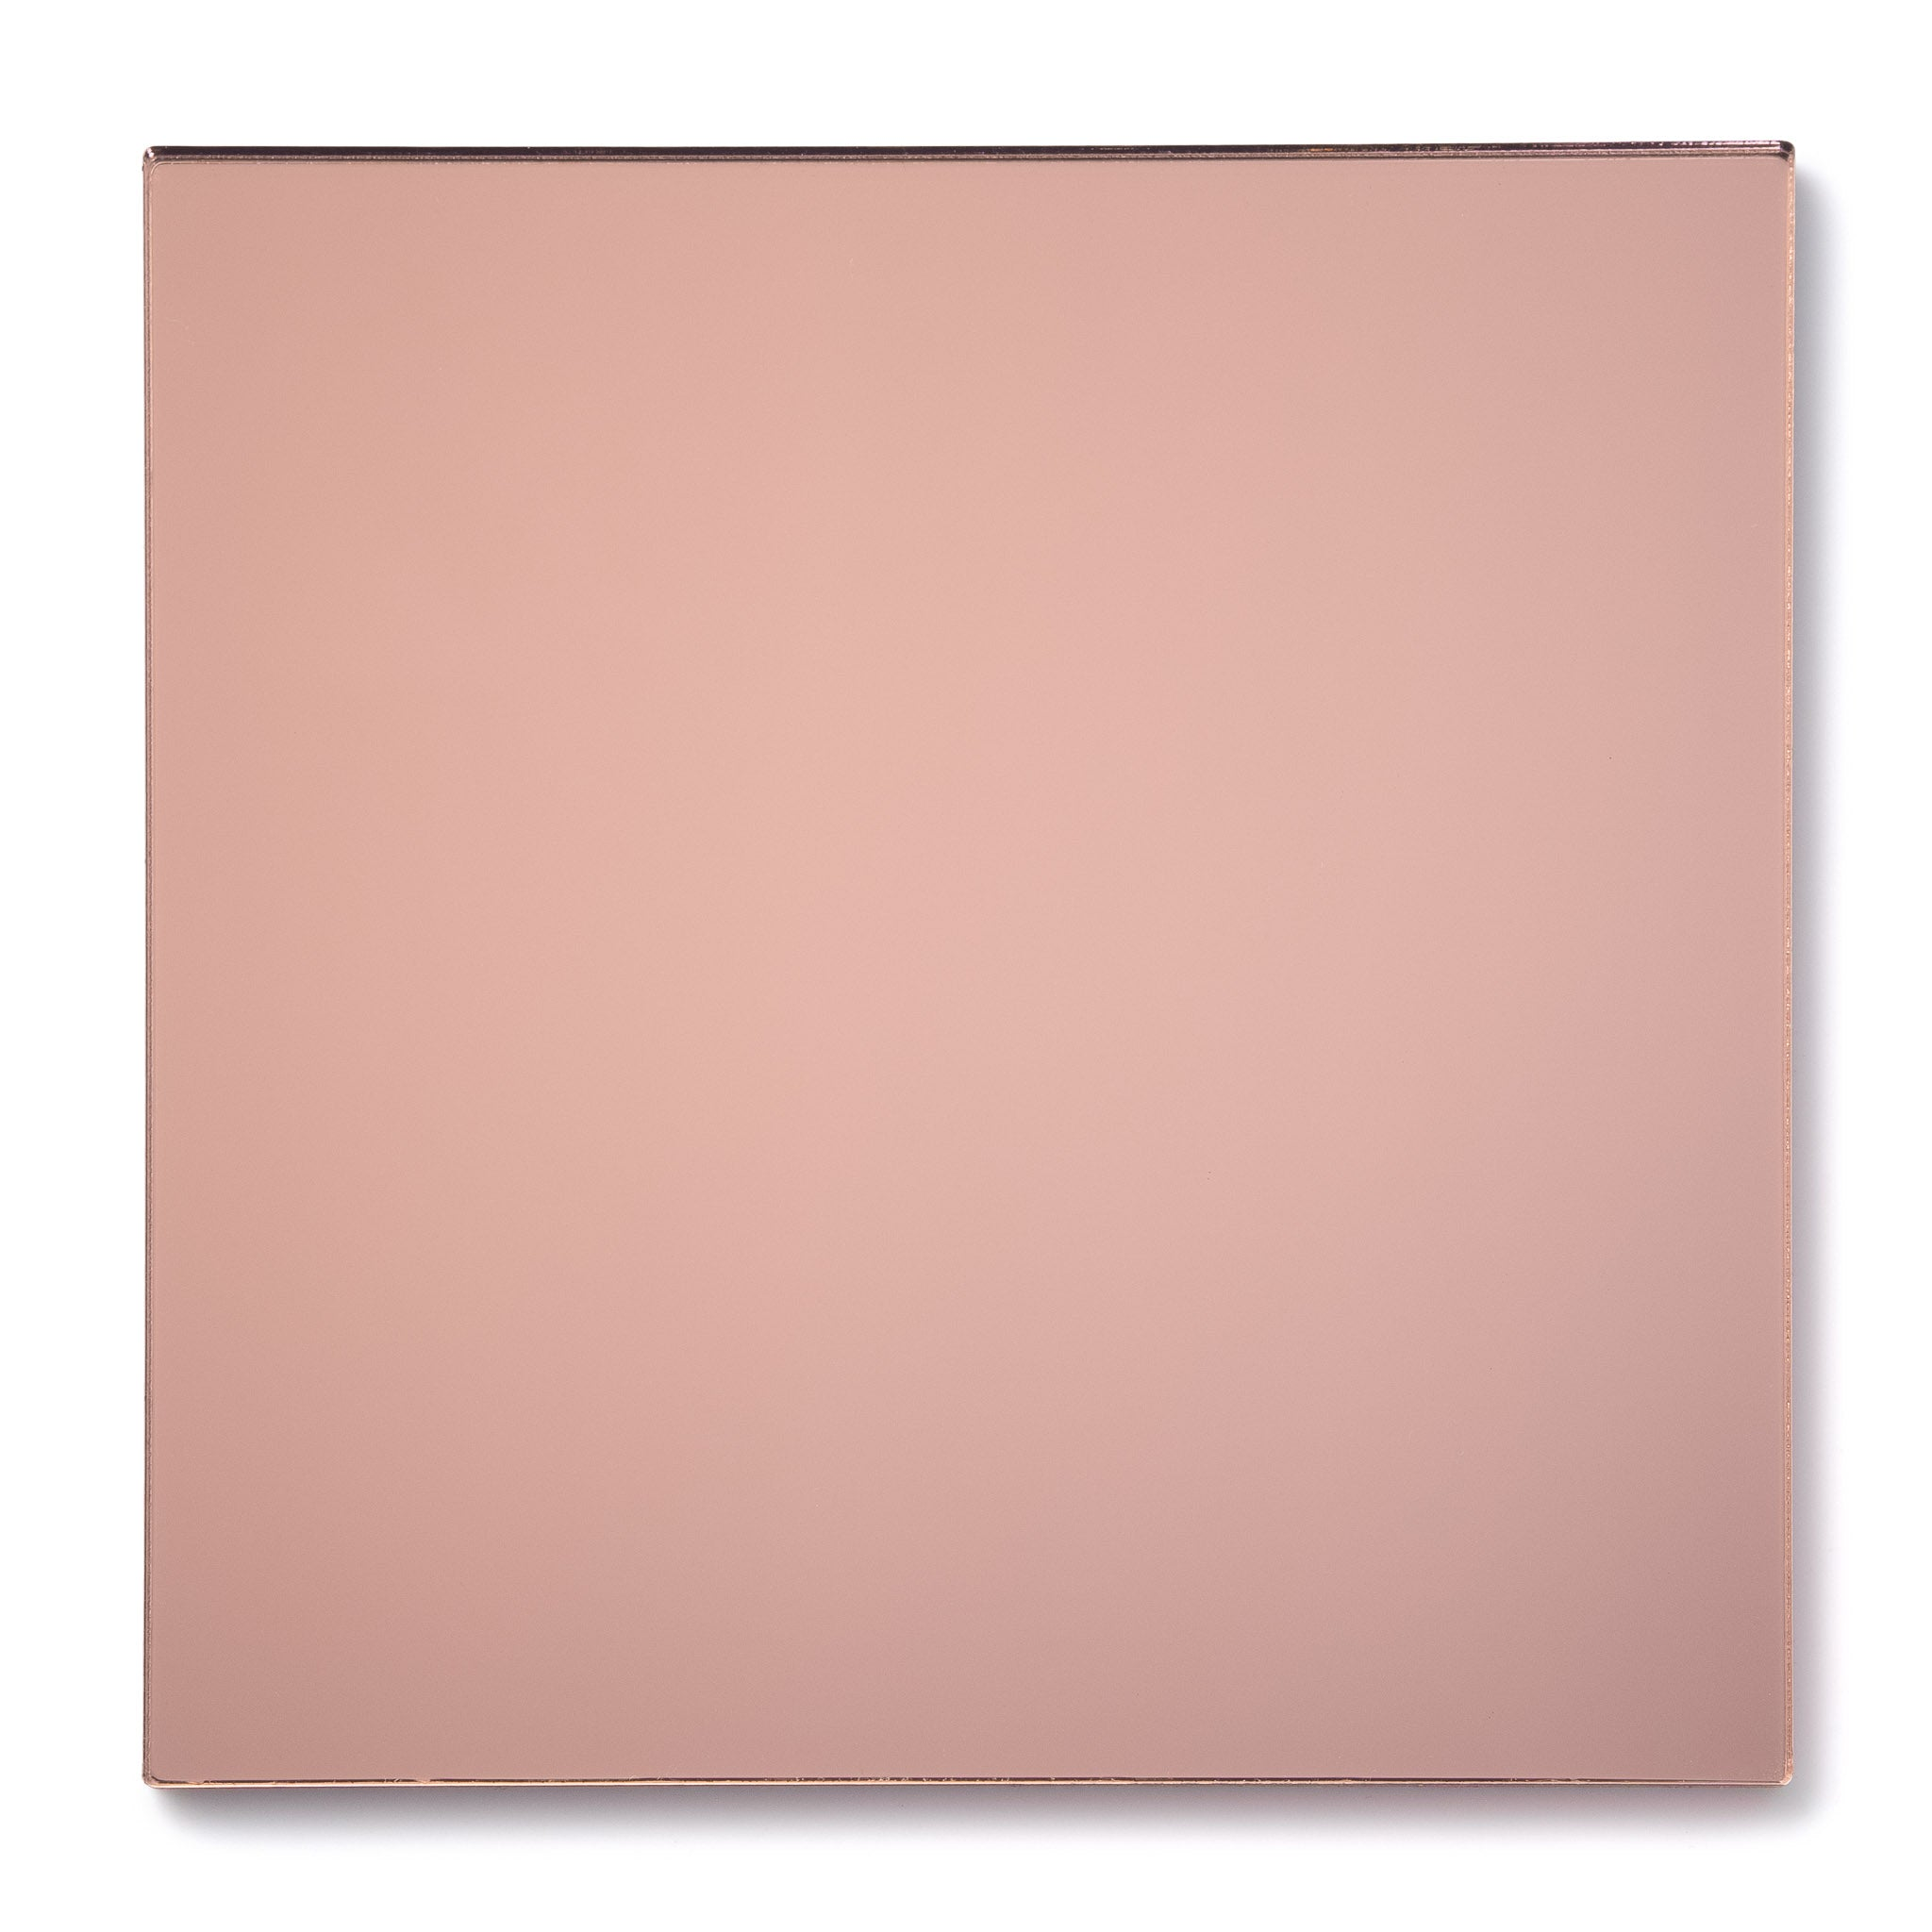 Rose Gold Mirror Acrylic Plexiglass Sheet, color 1350